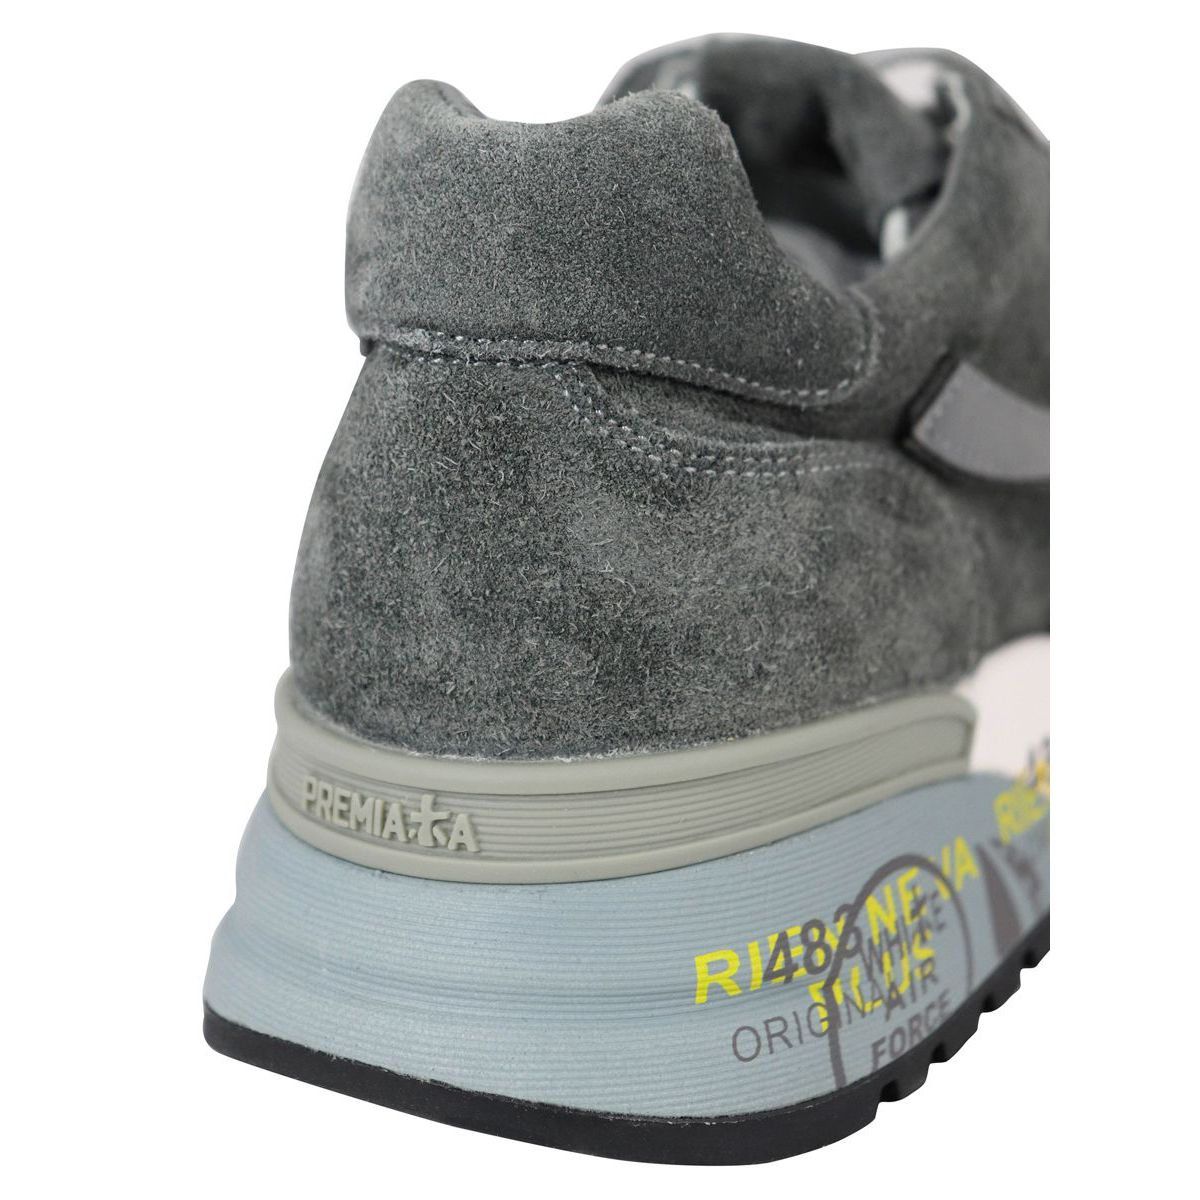 MICK sneakers Grey Premiata